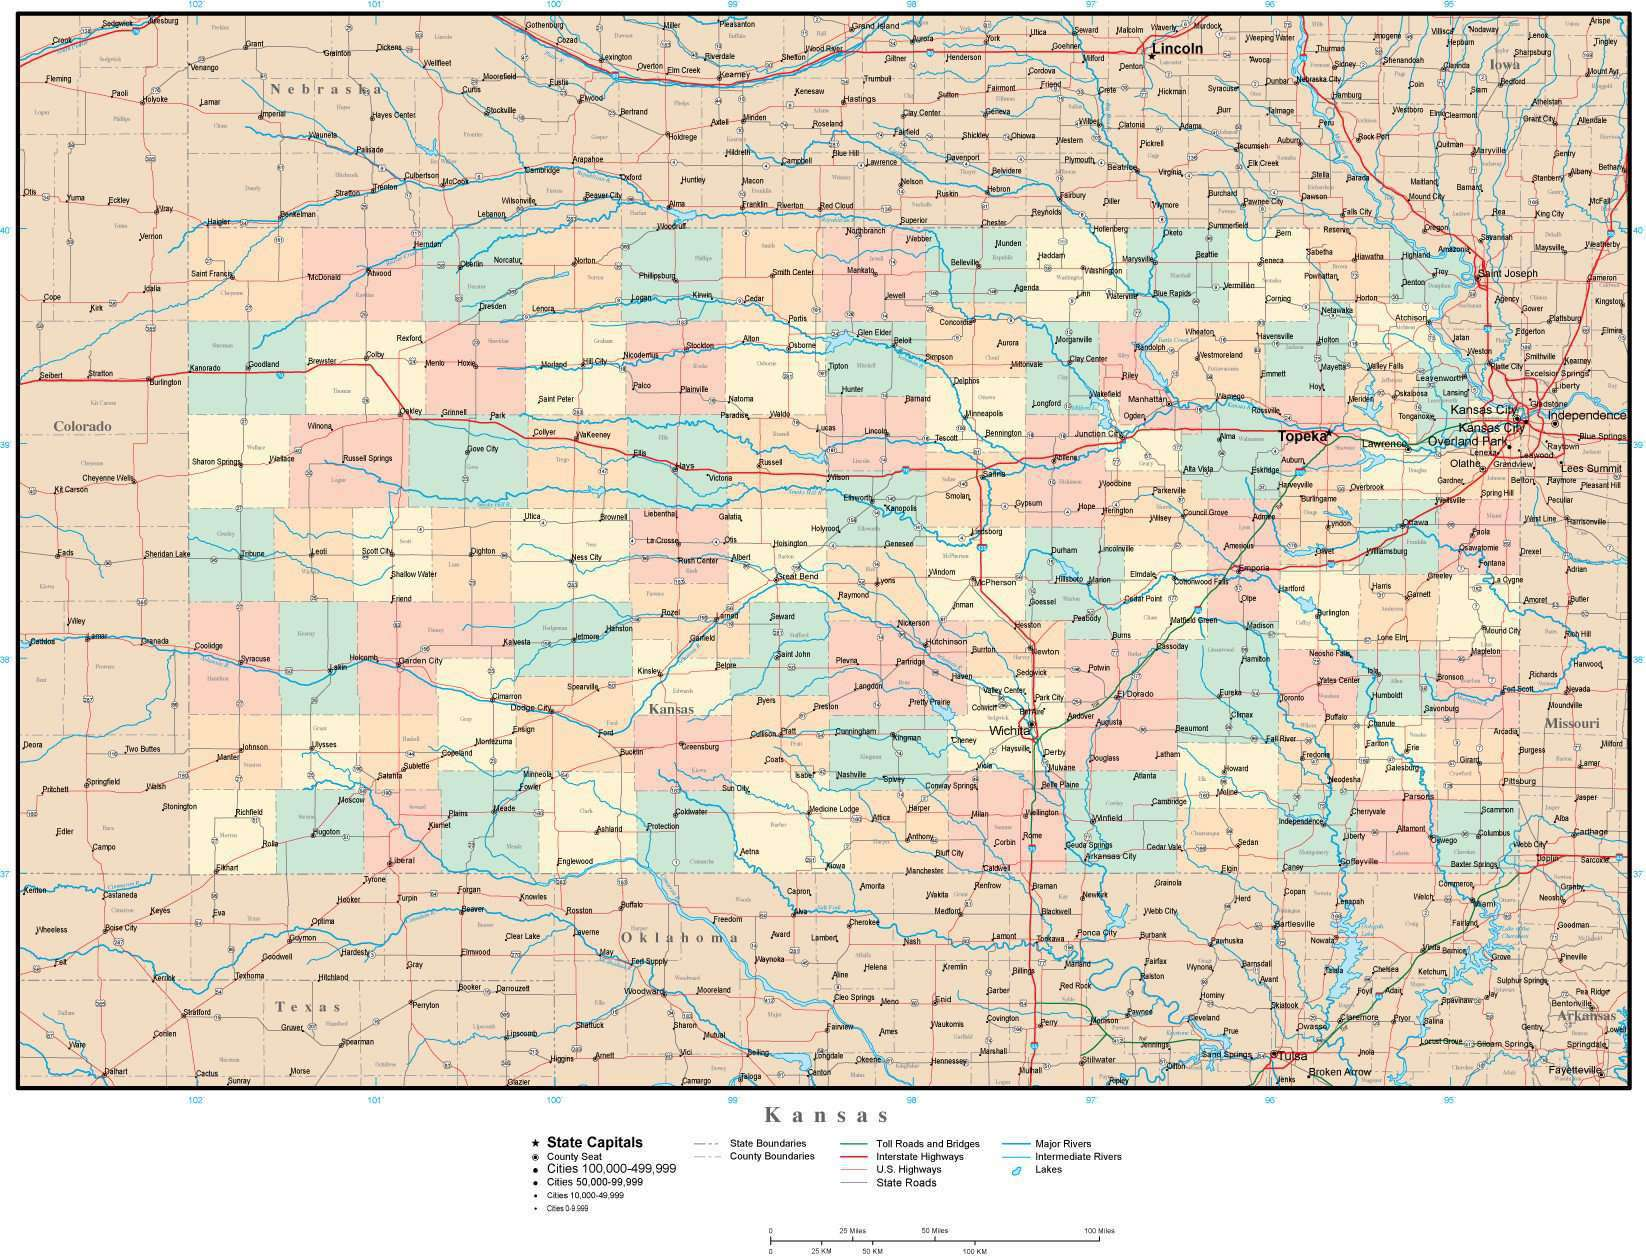 Kansas Map with Counties, Cities, County Seats, Major Roads, Rivers on kansas state map postcard, kansas main cities, kansas counties and cities list, kansas state major cities, kansas map with all cities, state of kansas cities, alabama county map of counties and cities, kansas with capital, va maps with counties and cities, kansas counties and county seats, printable kansas map with cities, ks map with cities, kansas map with all counties, kansas information, kansas state product map, kansas county plat maps, kansas map with cities only, kansas county map with cities, kansas state map kansas,